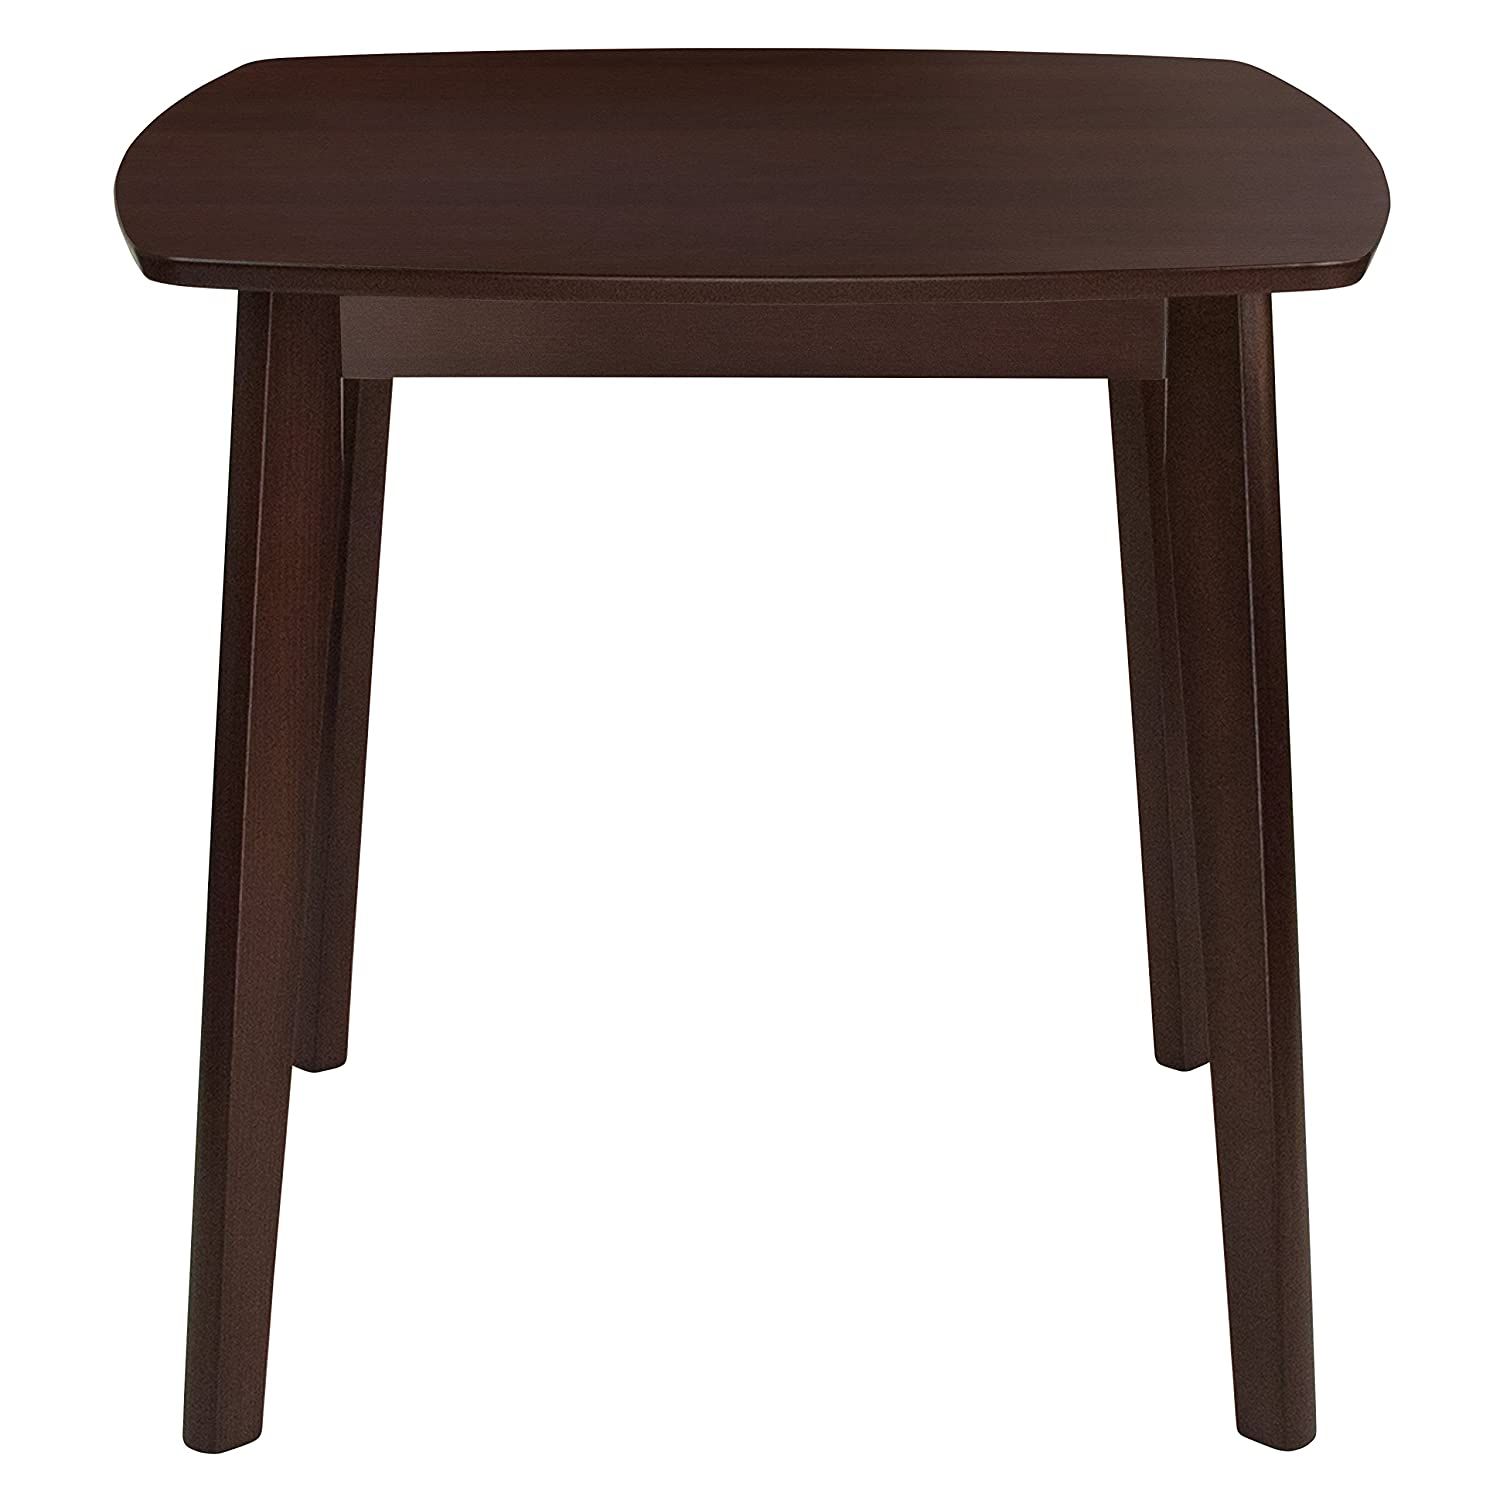 Flash Furniture Whitman 31.5 Square Espresso Finish Wood Dining Table with Clean Lines and Braced Legs